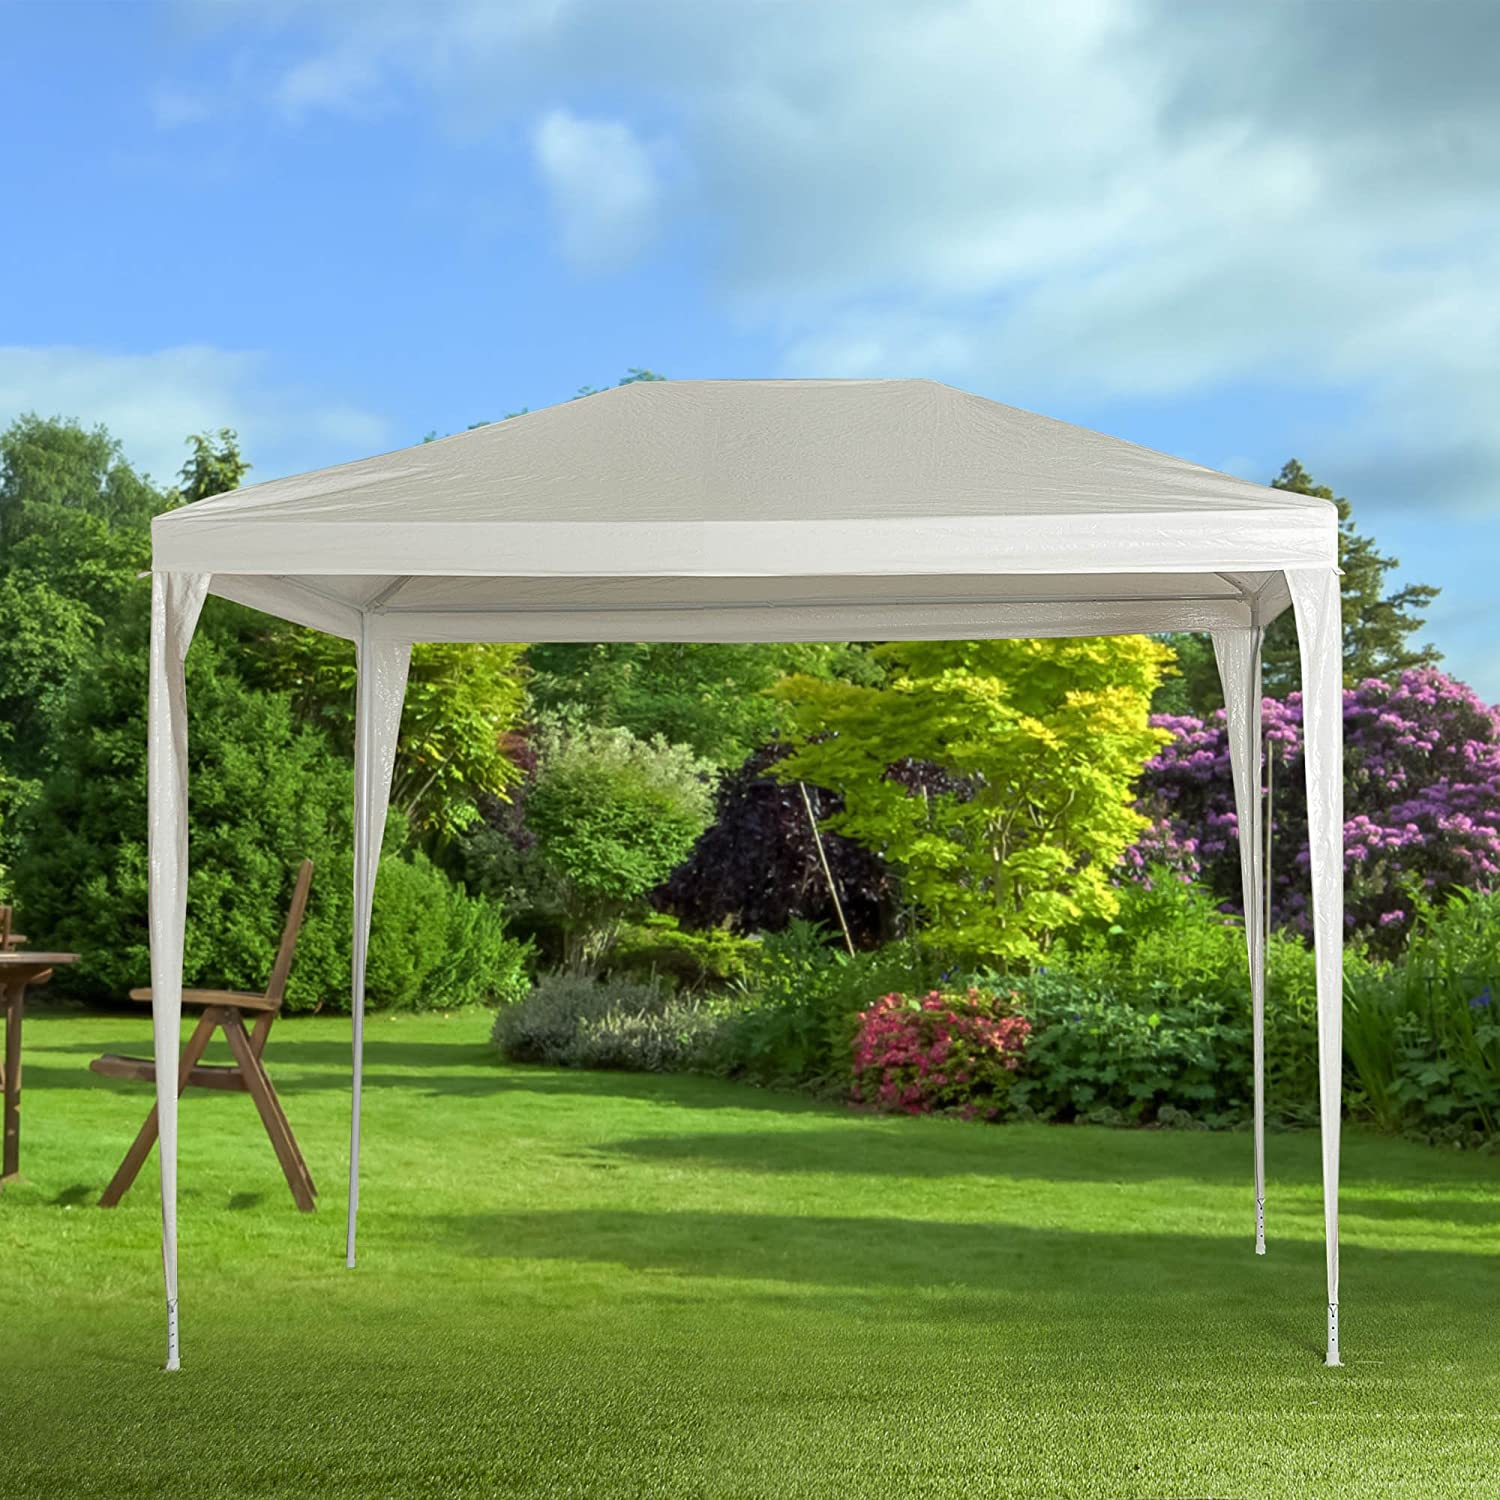 Habita Home Gazebo Desmontable 3X3 Rafia 3 x 3 m Color Blanco ...